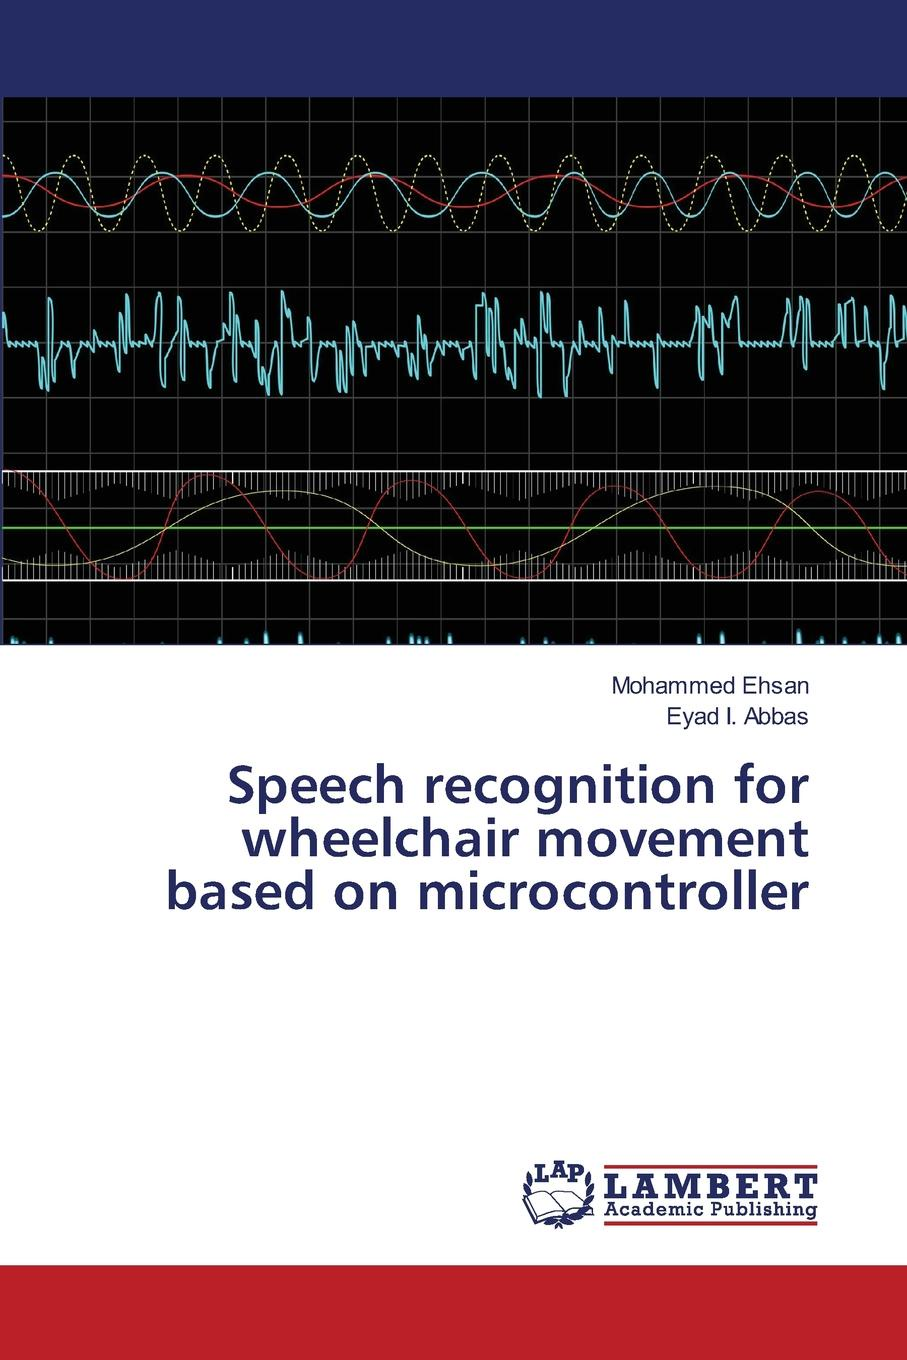 цена Ehsan Mohammed, I. Abbas Eyad Speech recognition for wheelchair movement based on microcontroller в интернет-магазинах